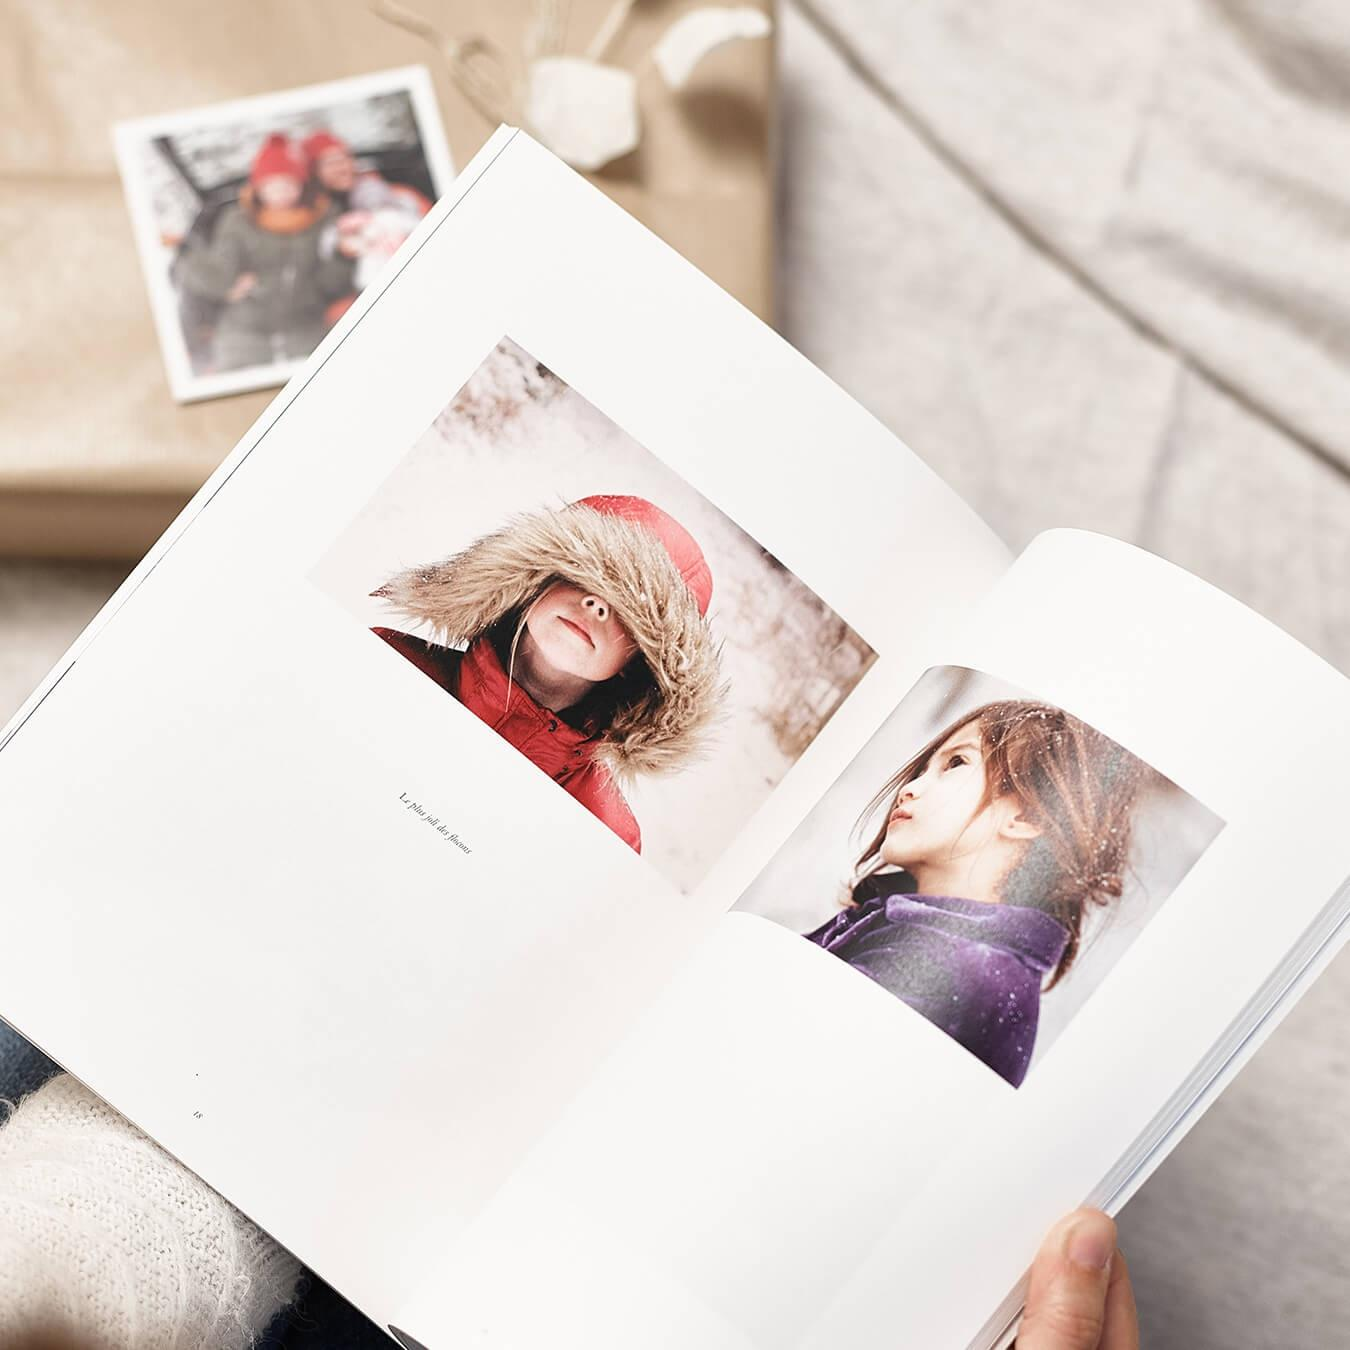 Innocence - Revue - Customized photo book